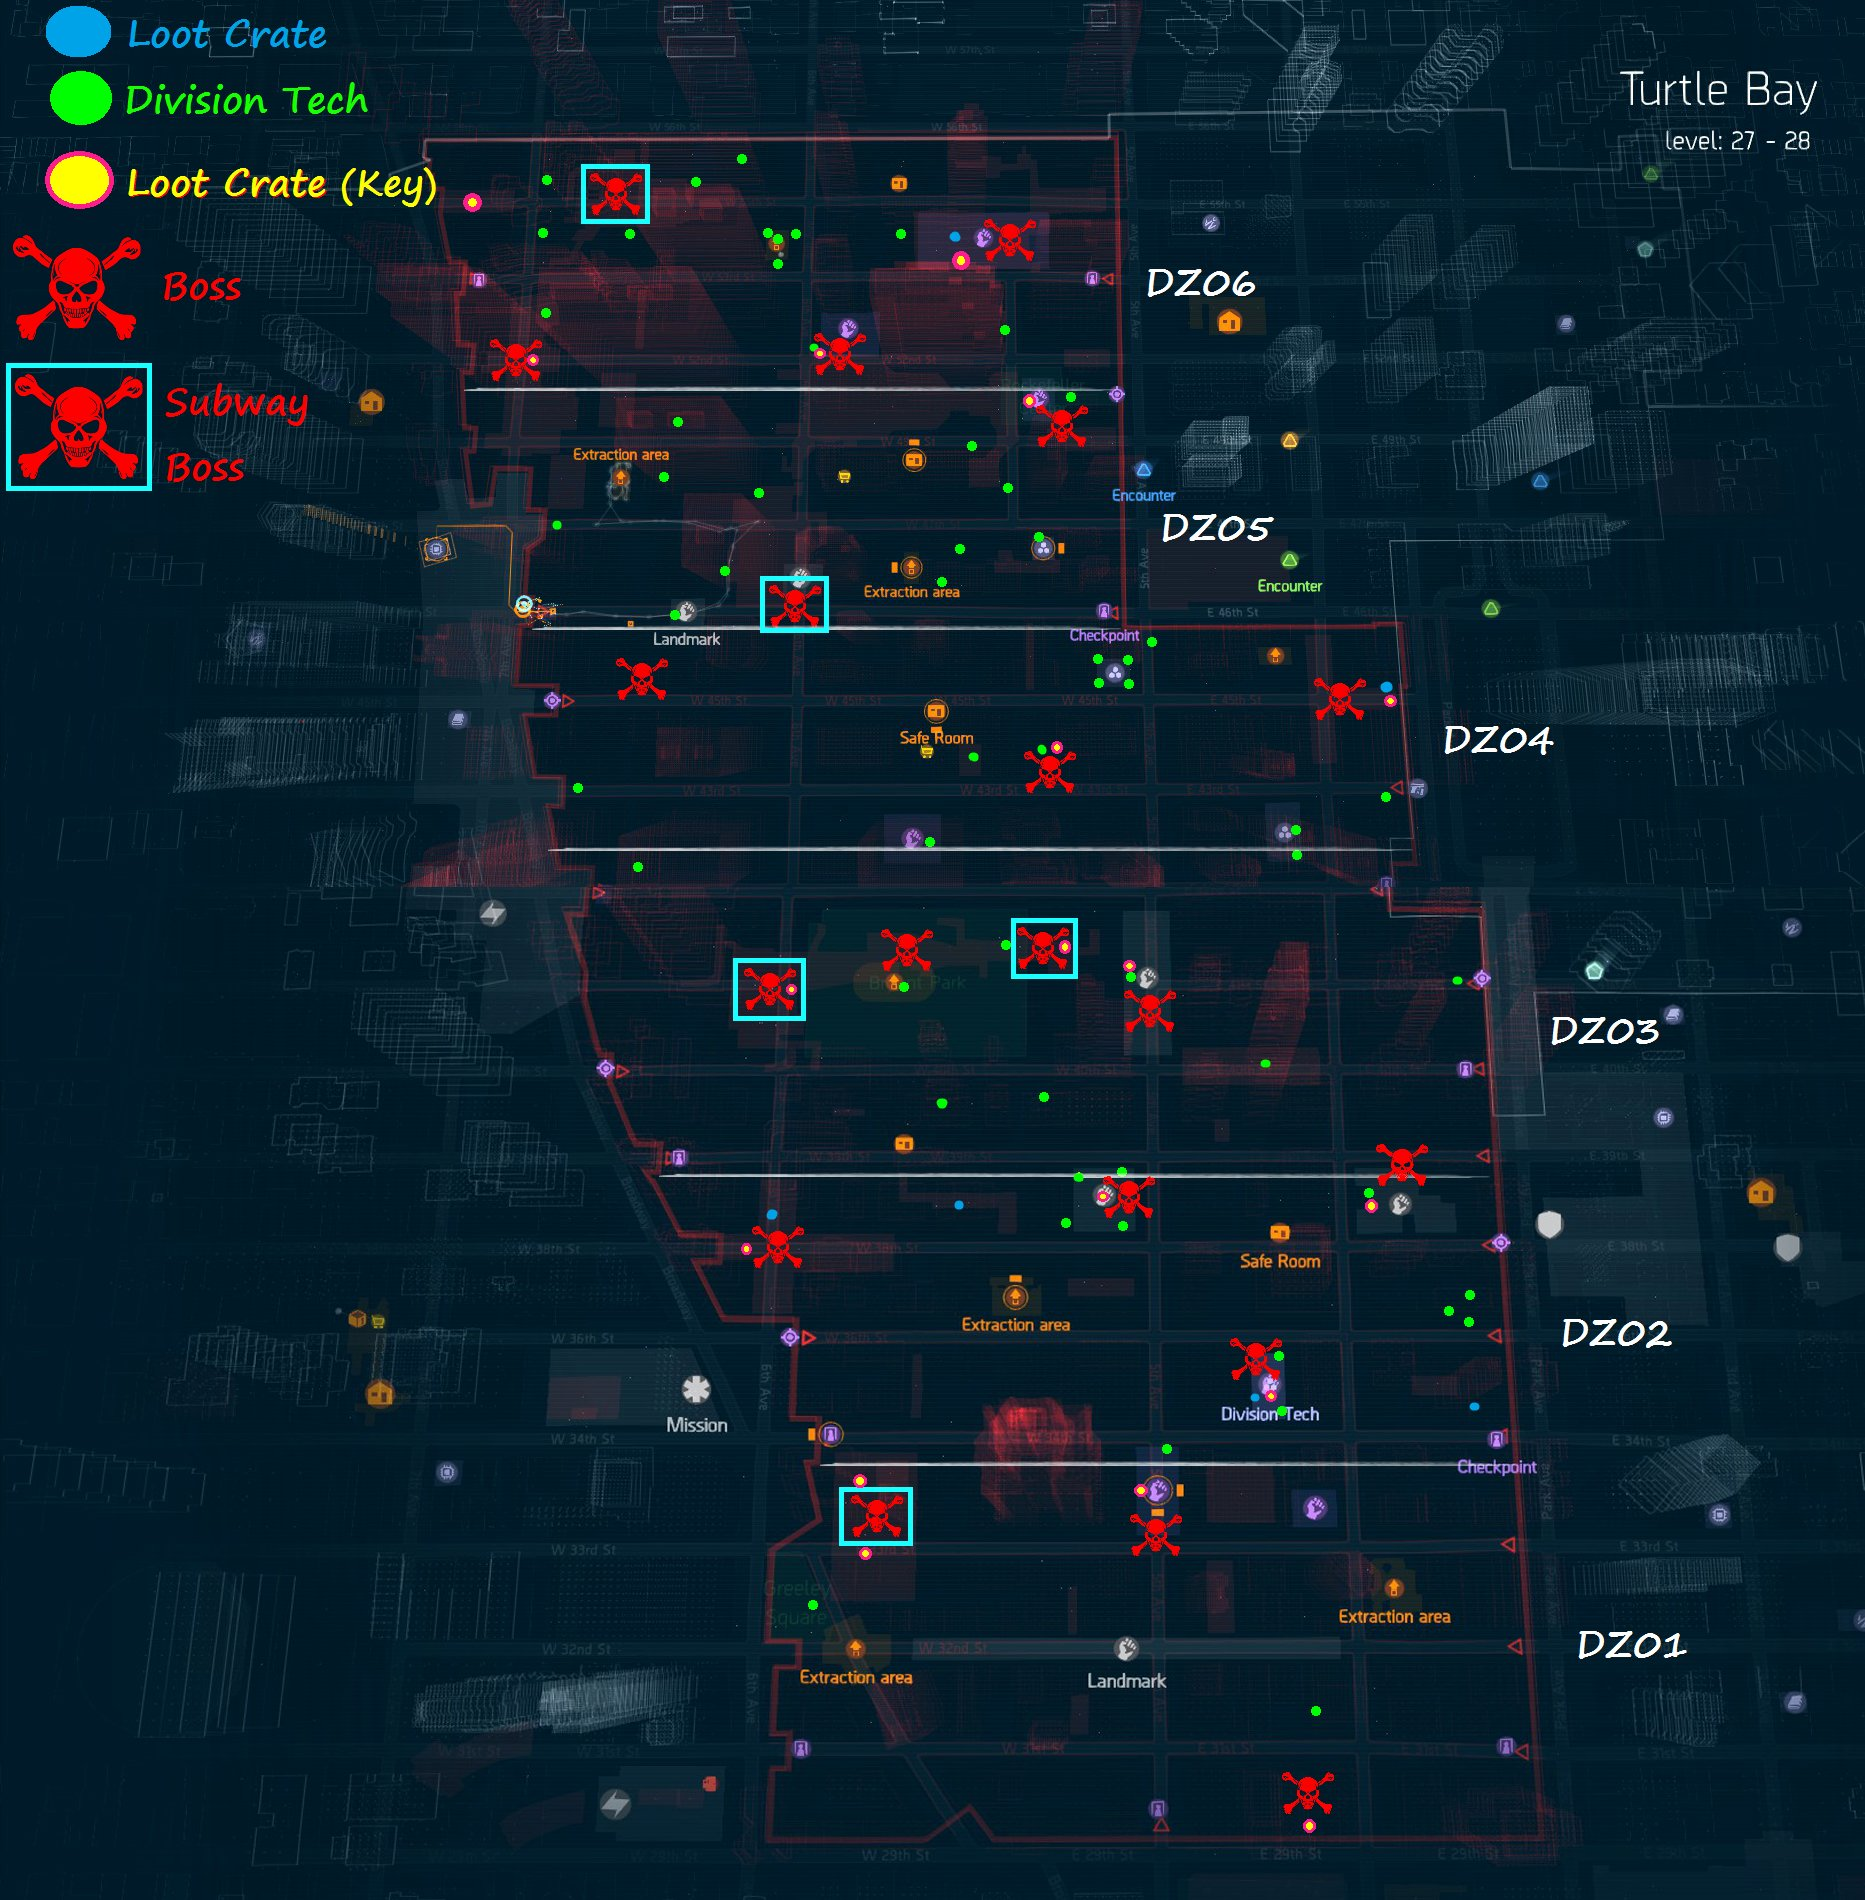 Map Of World Bosses In The Division.Tom Clancy S The Division Cheats Codes Cheat Codes Exploits